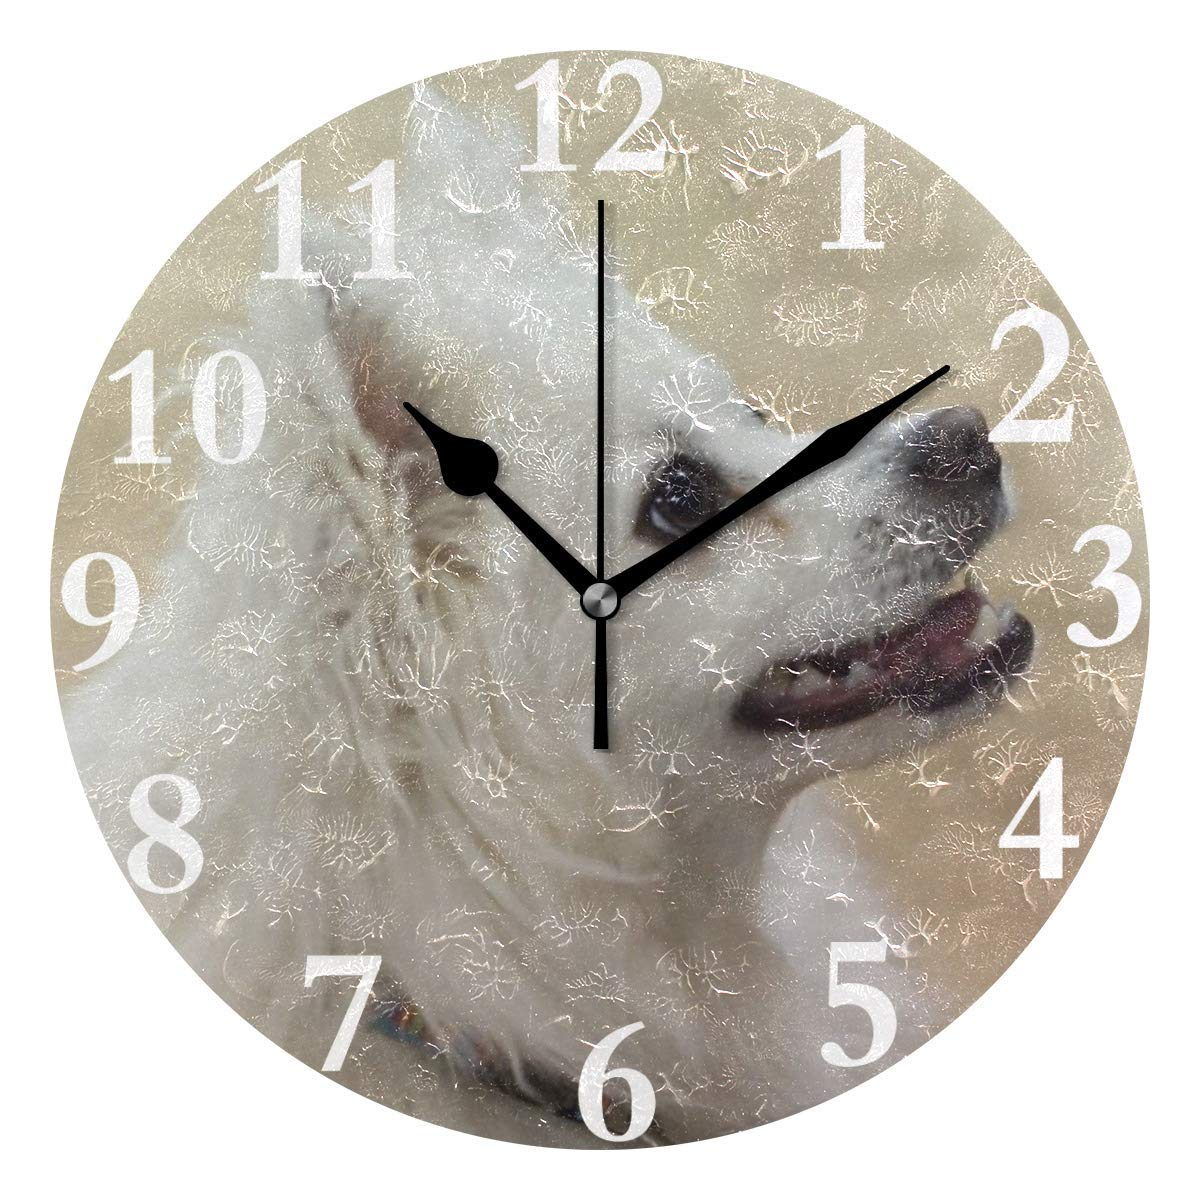 Oh Sweety Wall Clock American Eskimo Dog Custom Silent Non Ticking Decorative Round Digital Clocks for Home/Office…